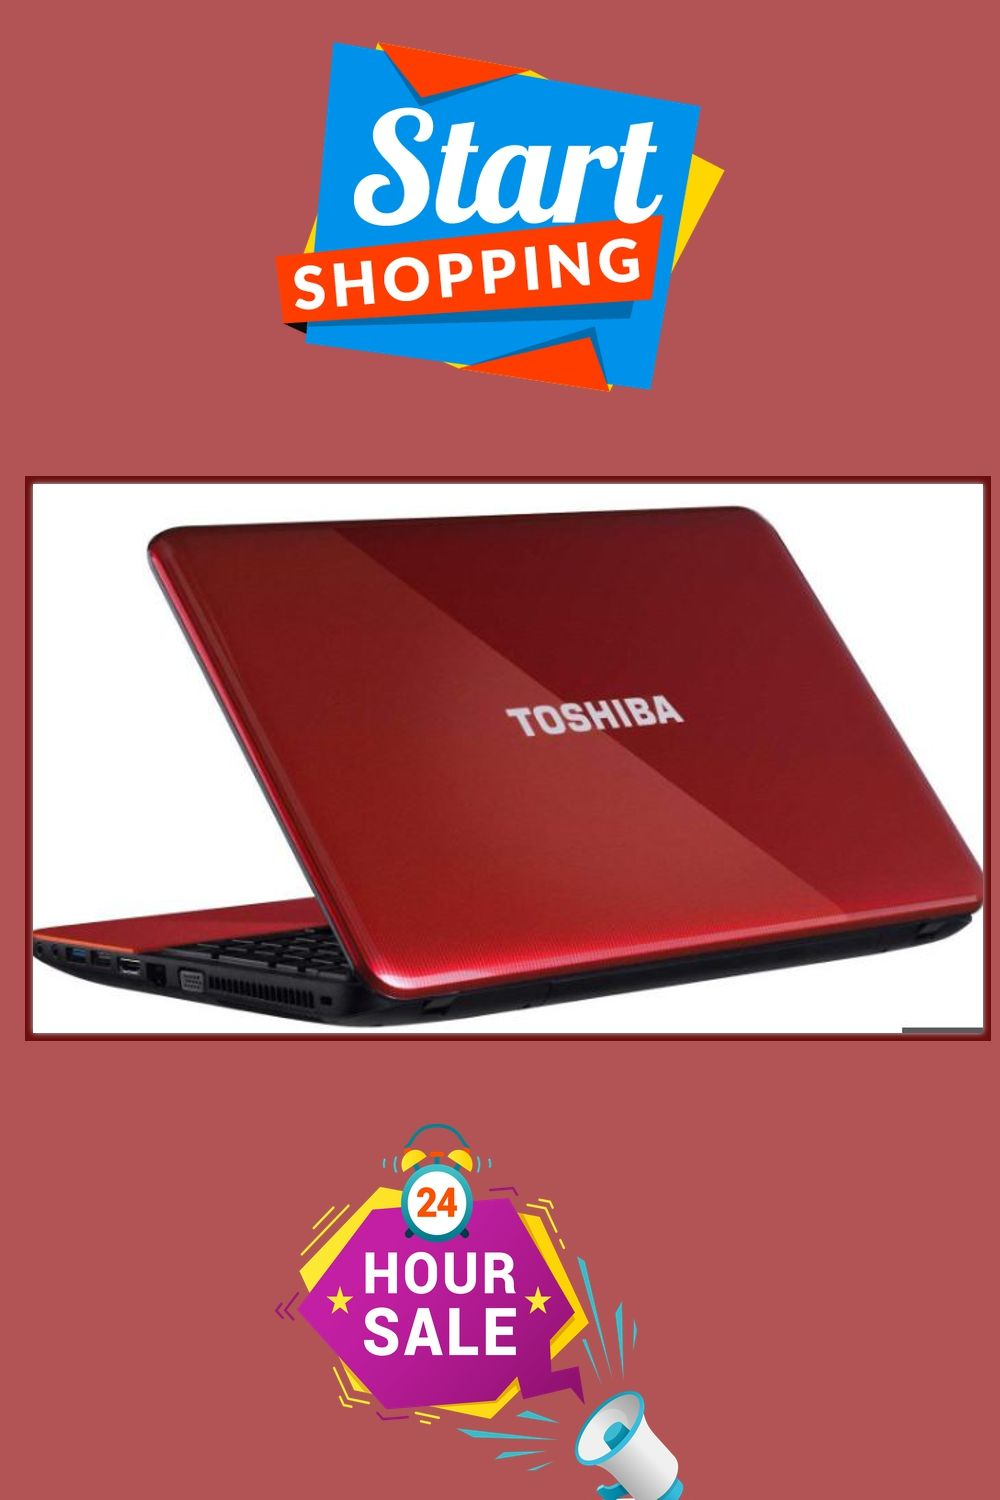 Grab Now The Best Toshiba Labor Day Laptop Deals 2020 Labor Day Deal In 2020 Toshiba Cyber Monday Laptop Laptop Deals